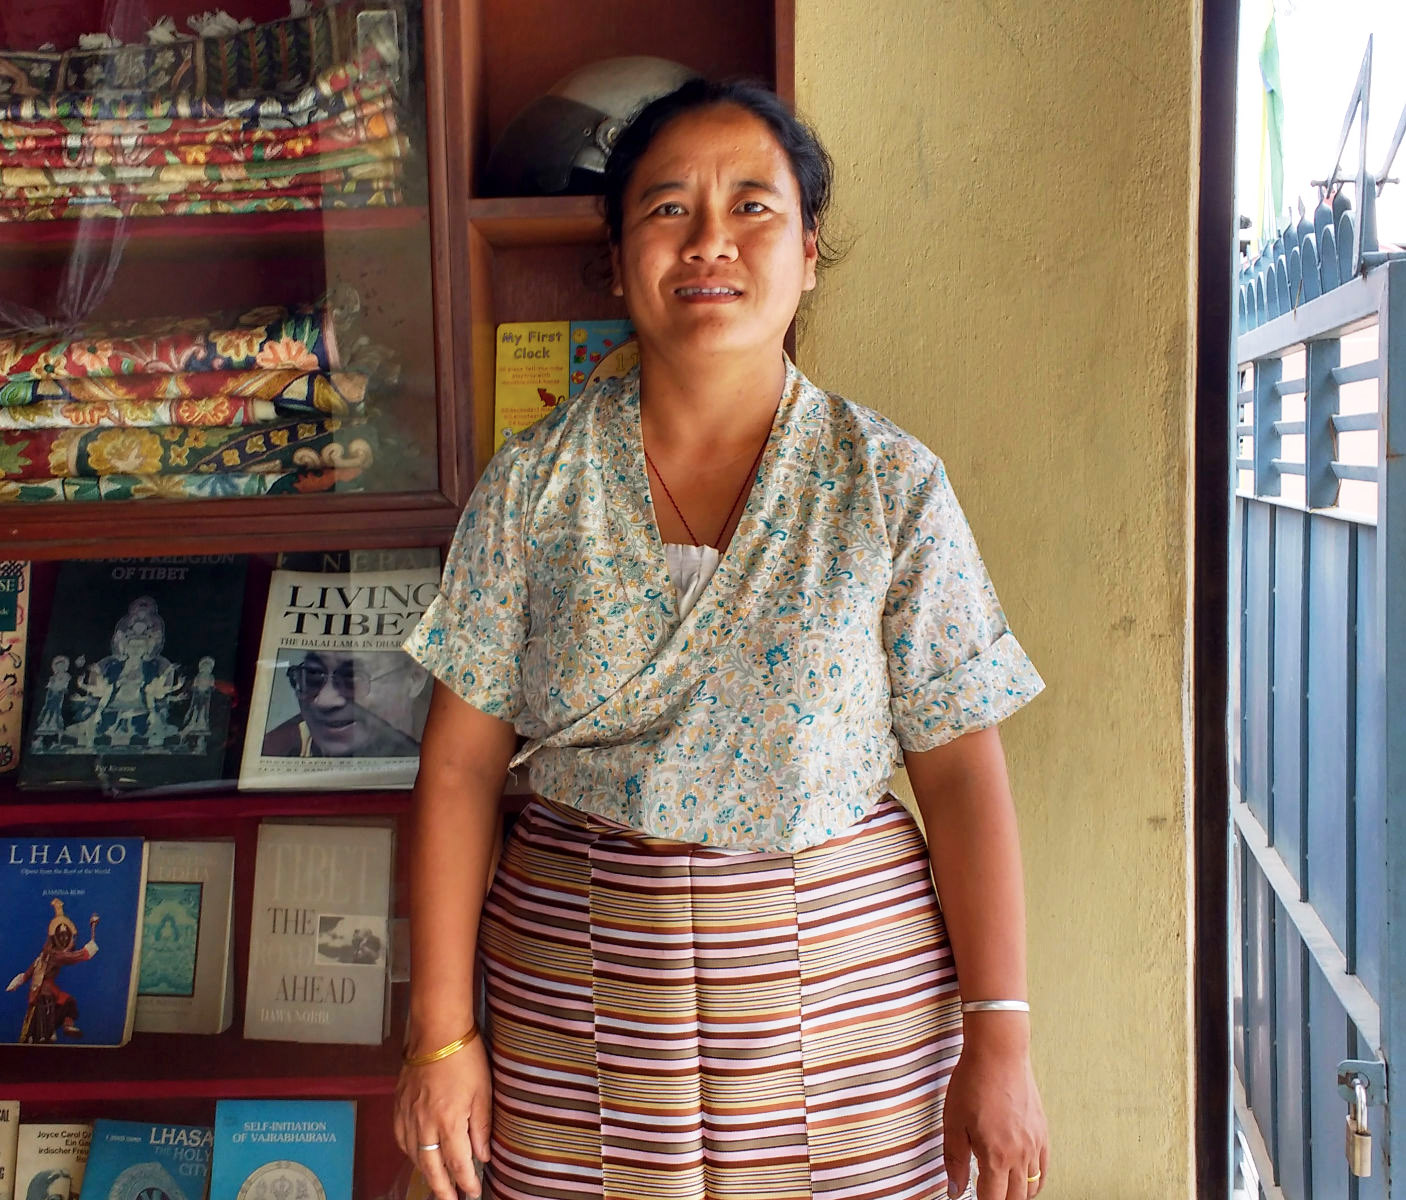 'I was home when the earthquake hit. Coming back here is the scariest thing I have done'